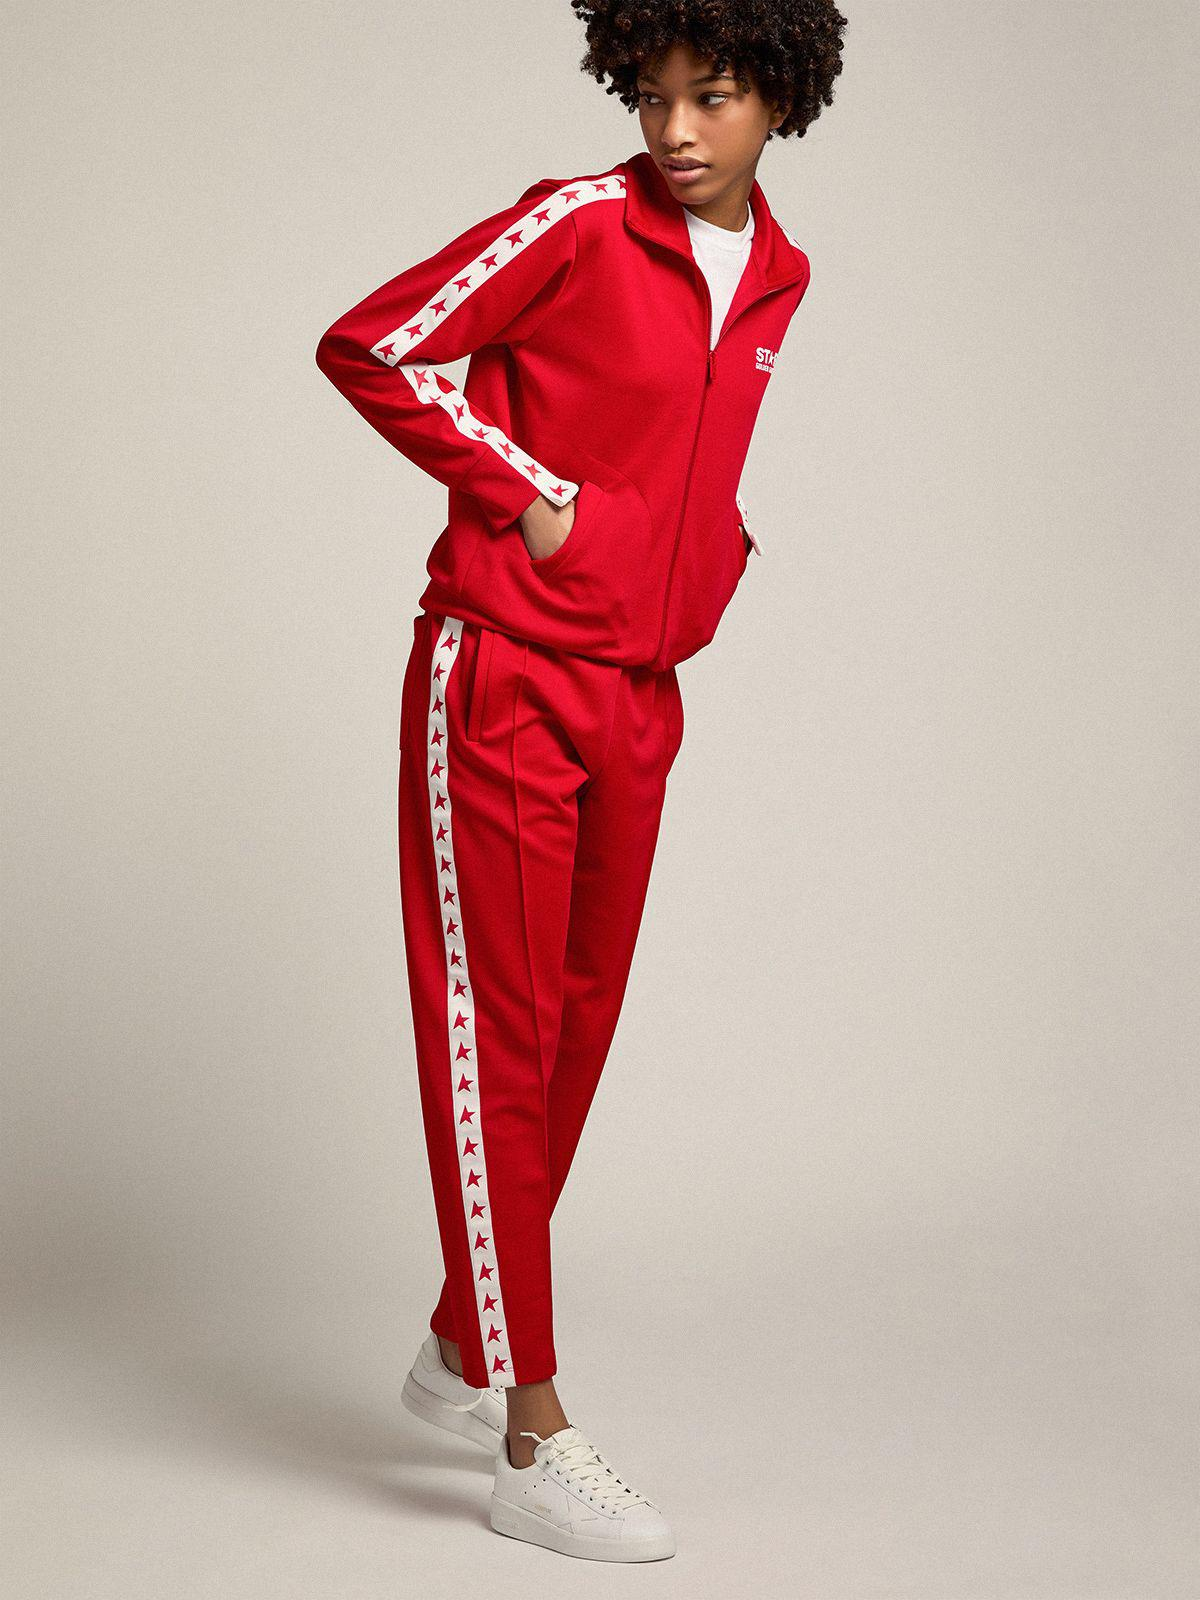 Red Denise Star Collection zipped sweatshirt with red stars 2